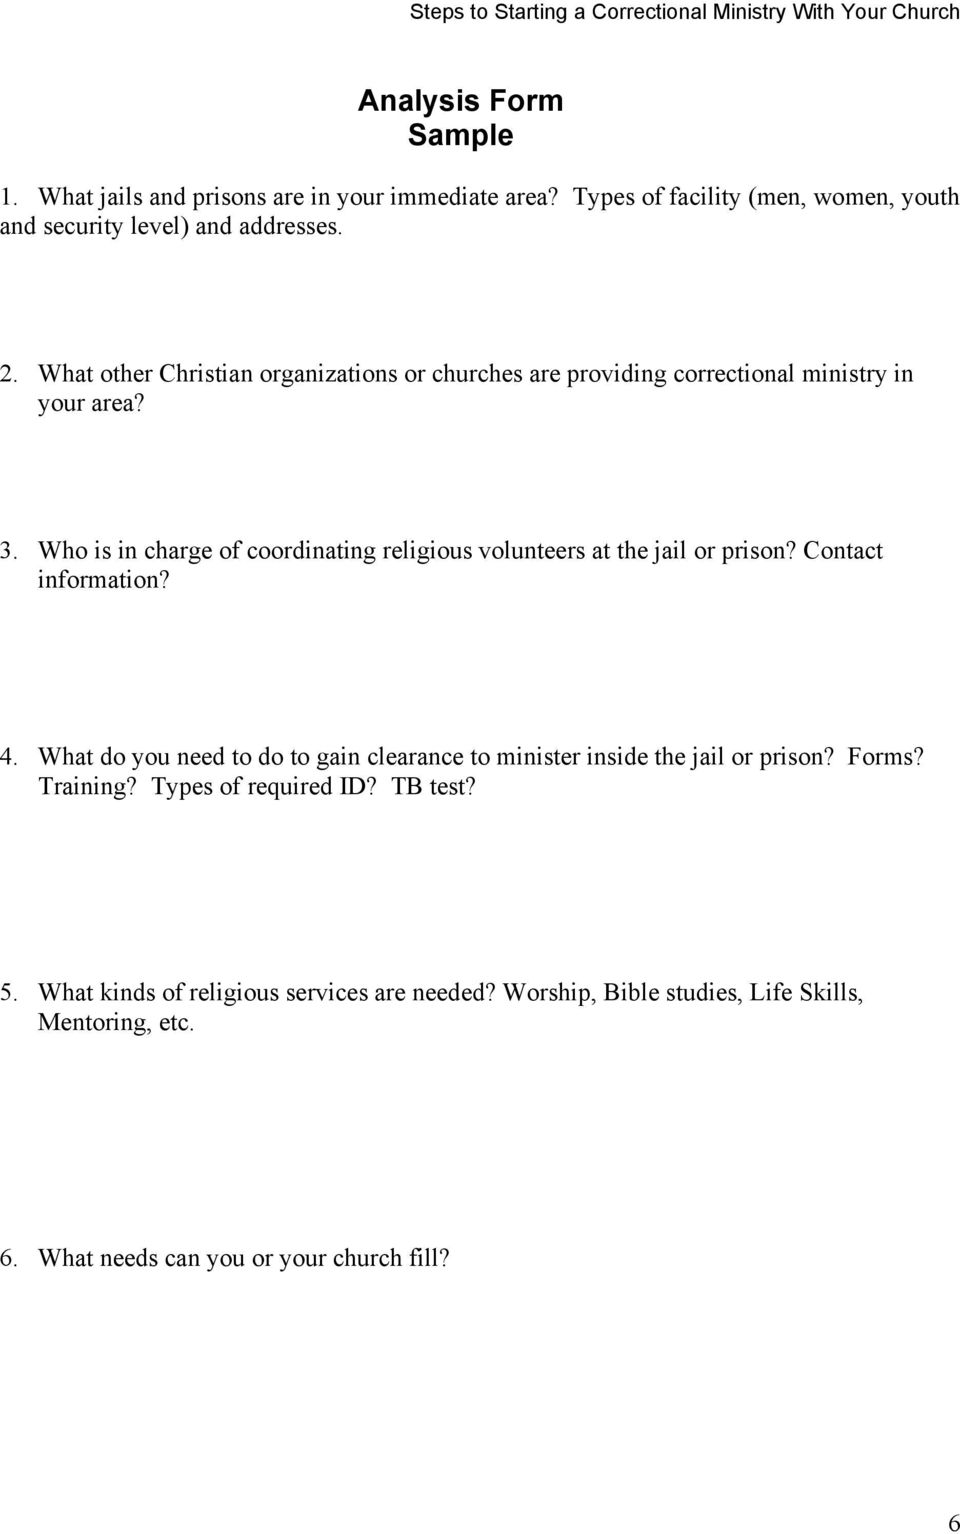 Steps to Starting a Correctional Ministry with Your Church - PDF